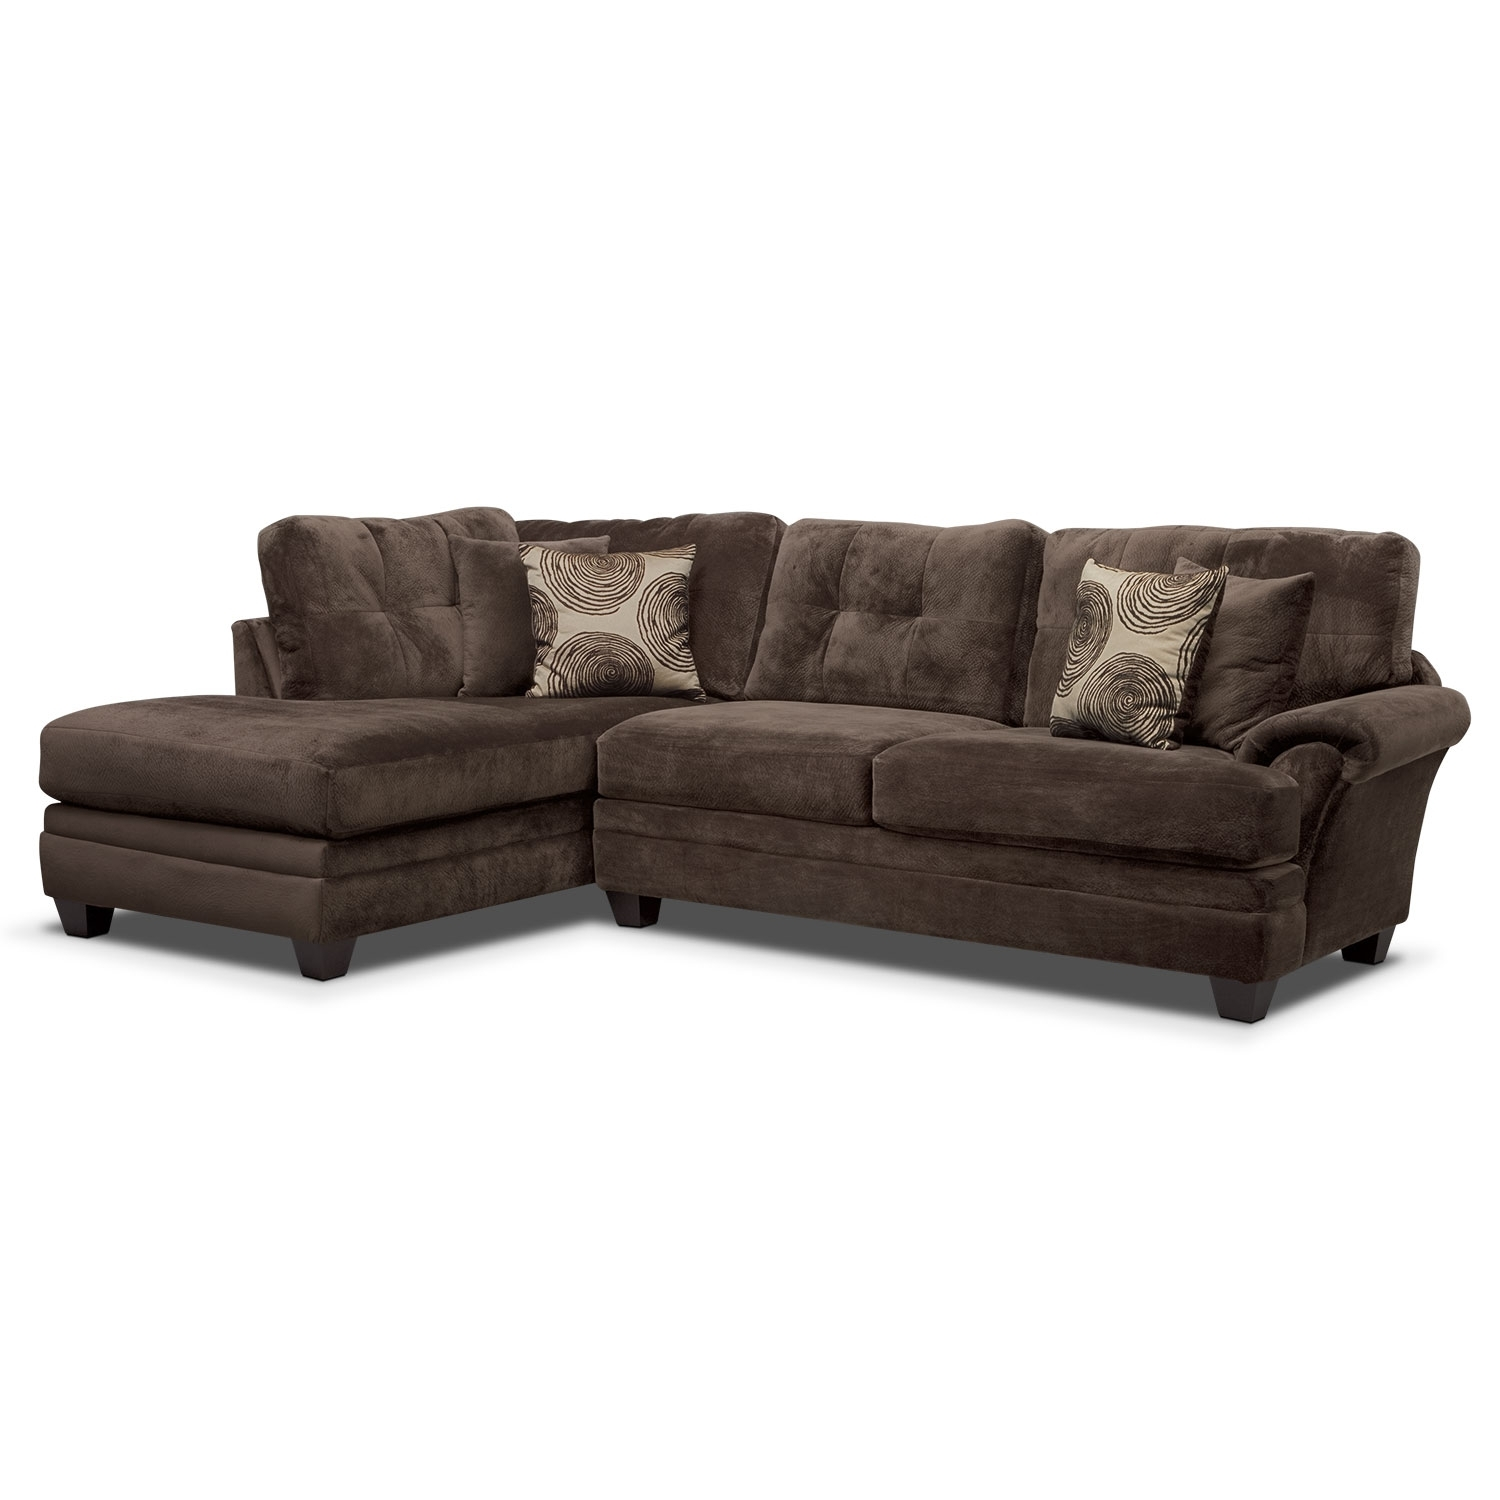 Cordelle 2 Piece Sectional With Left Facing Chaise – Chocolate Intended For Jackson 6 Piece Power Reclining Sectionals With  Sleeper (Image 12 of 25)